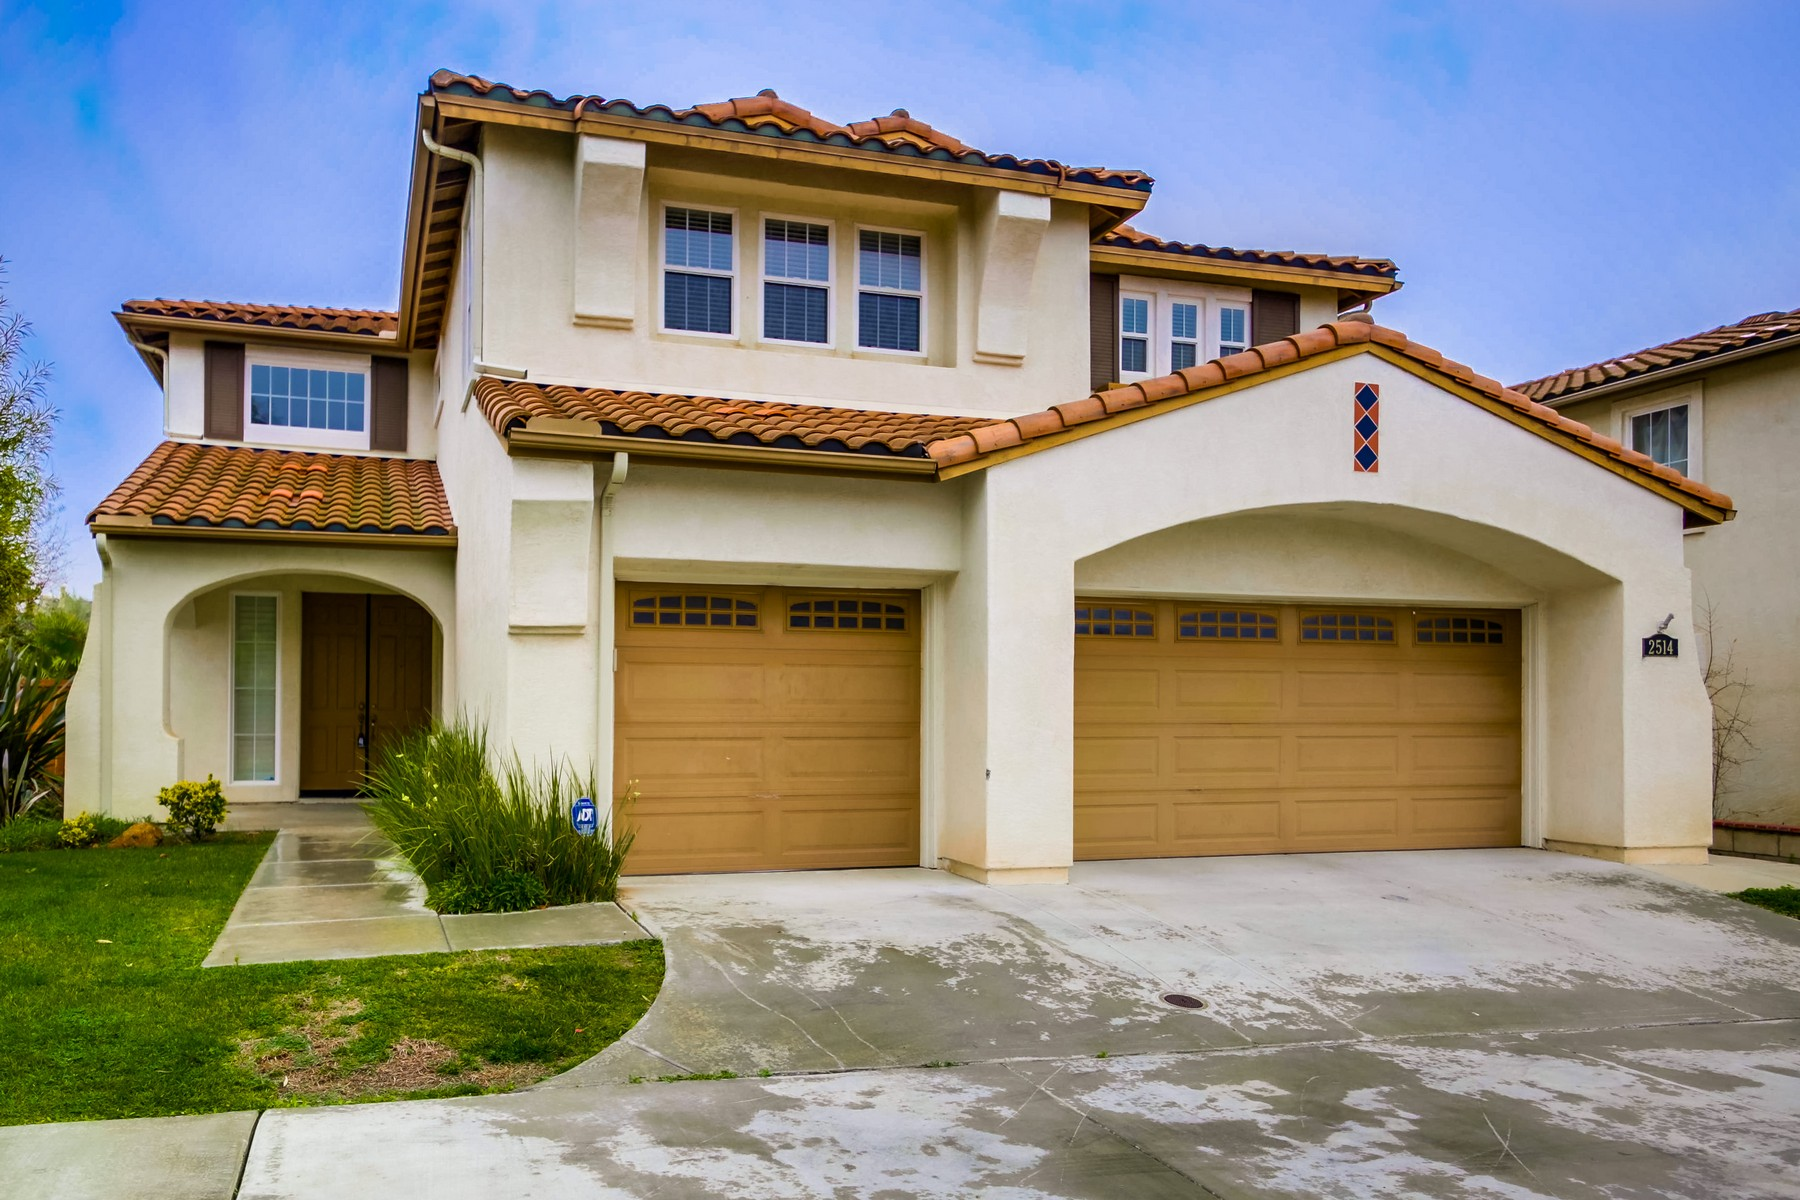 Single Family Home for Sale at 2514 Trail Marker Place Chula Vista, California 91914 United States